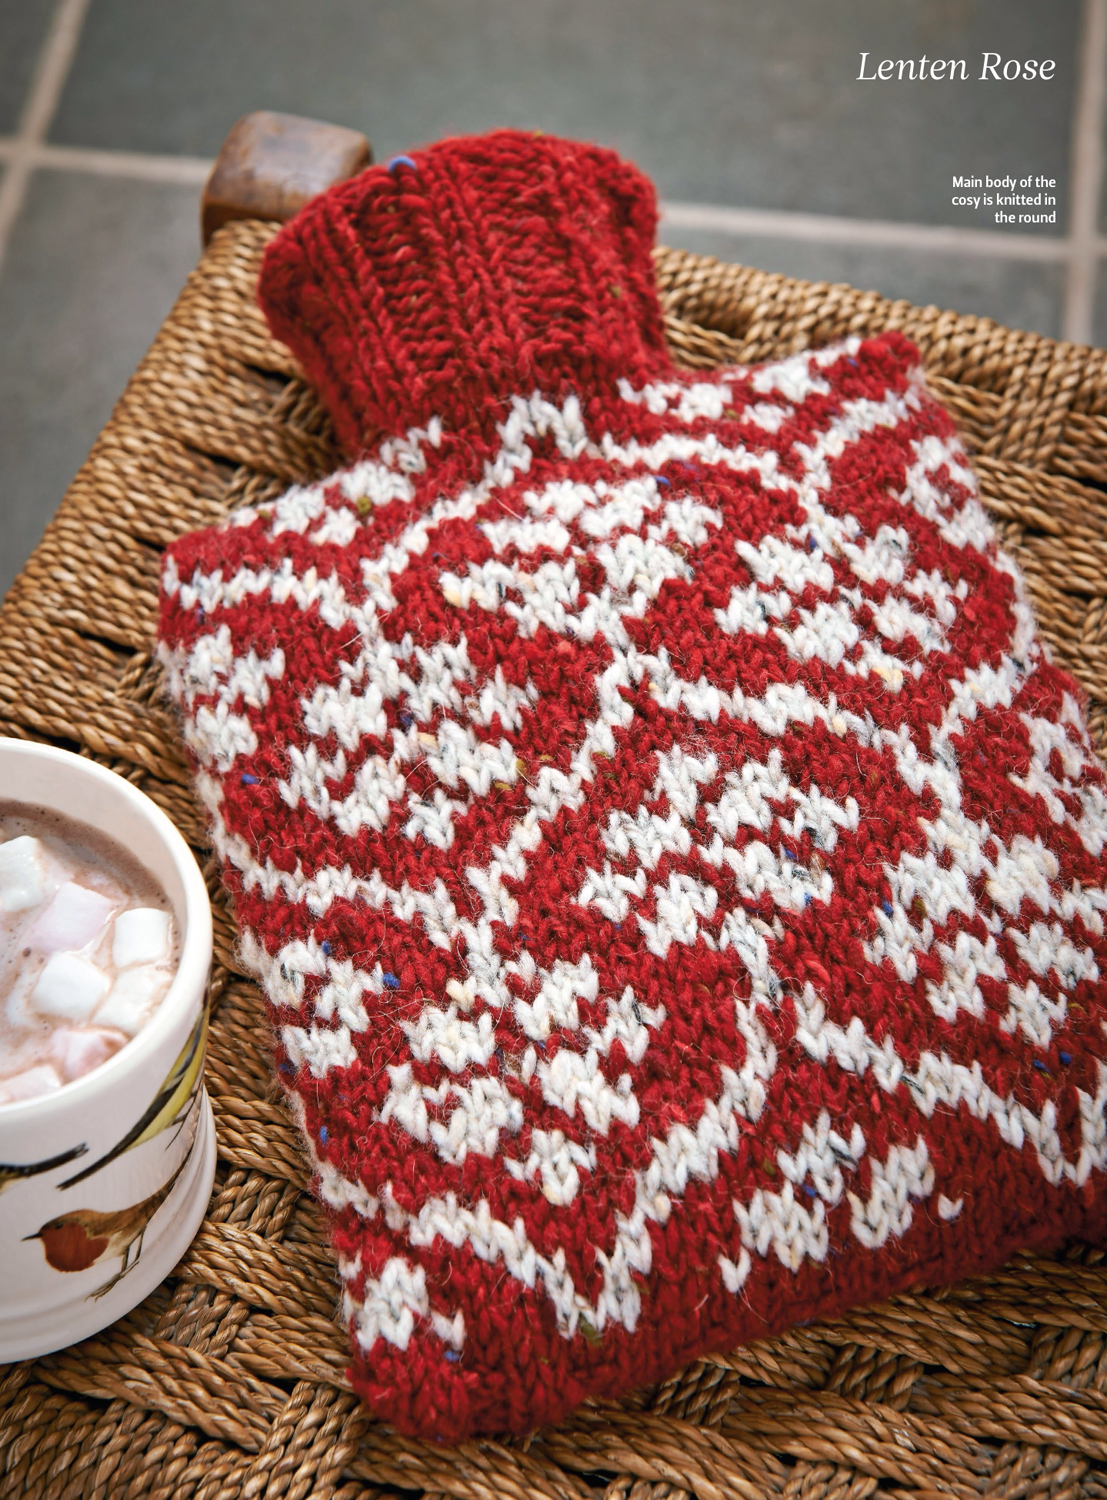 The Knitter Issue 77 A Review Knittingkonrad